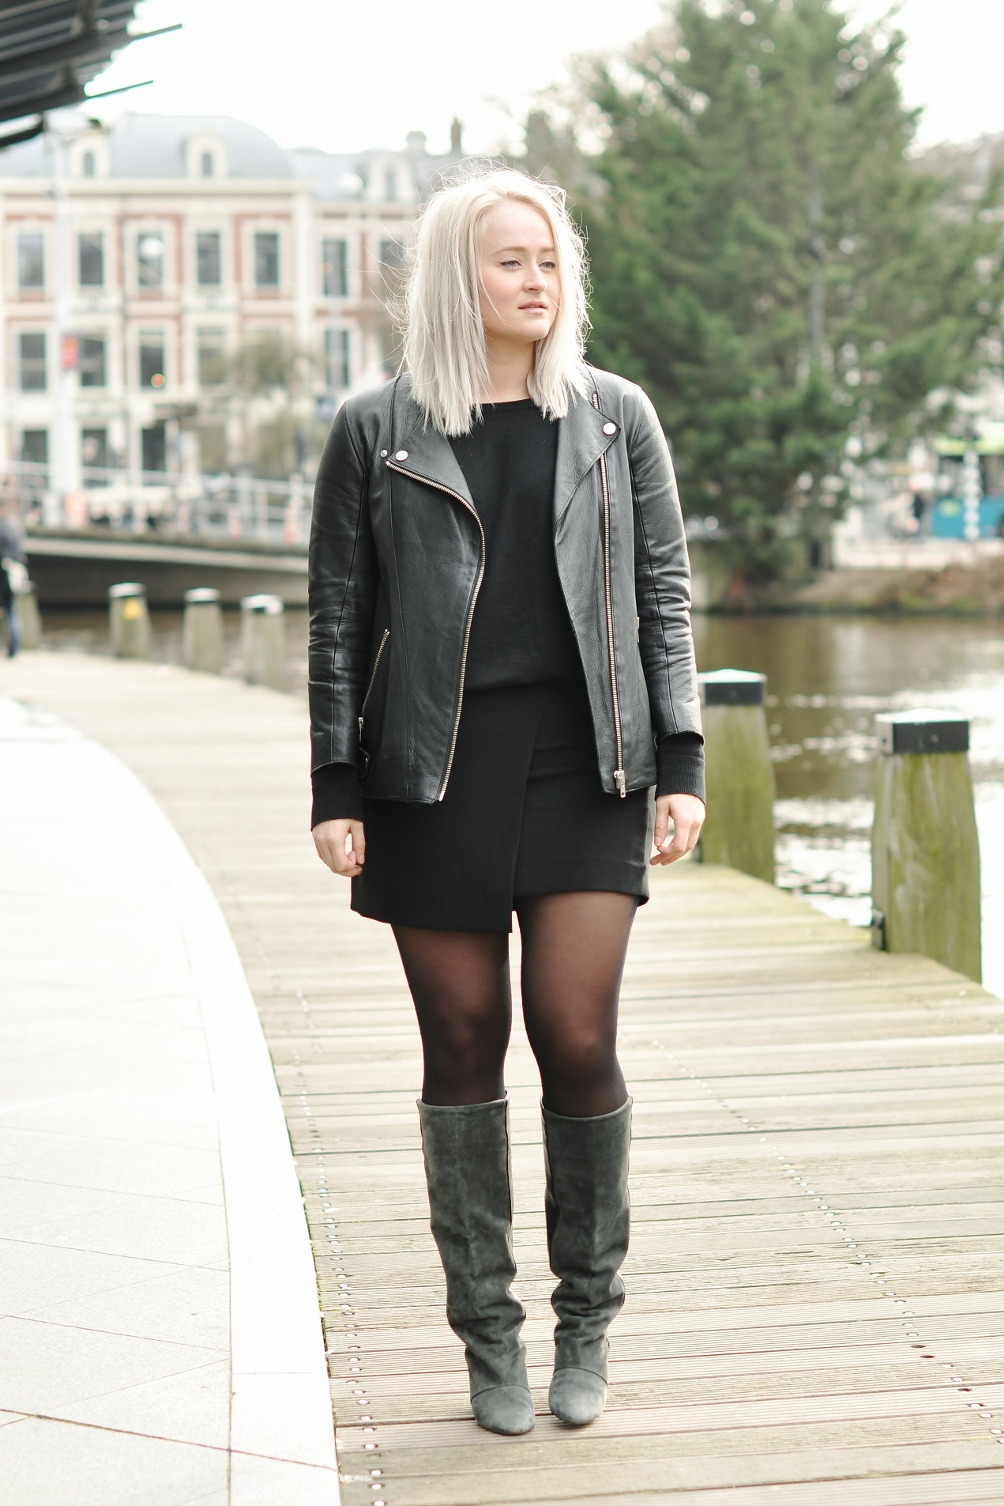 Leather jacket with leather boots